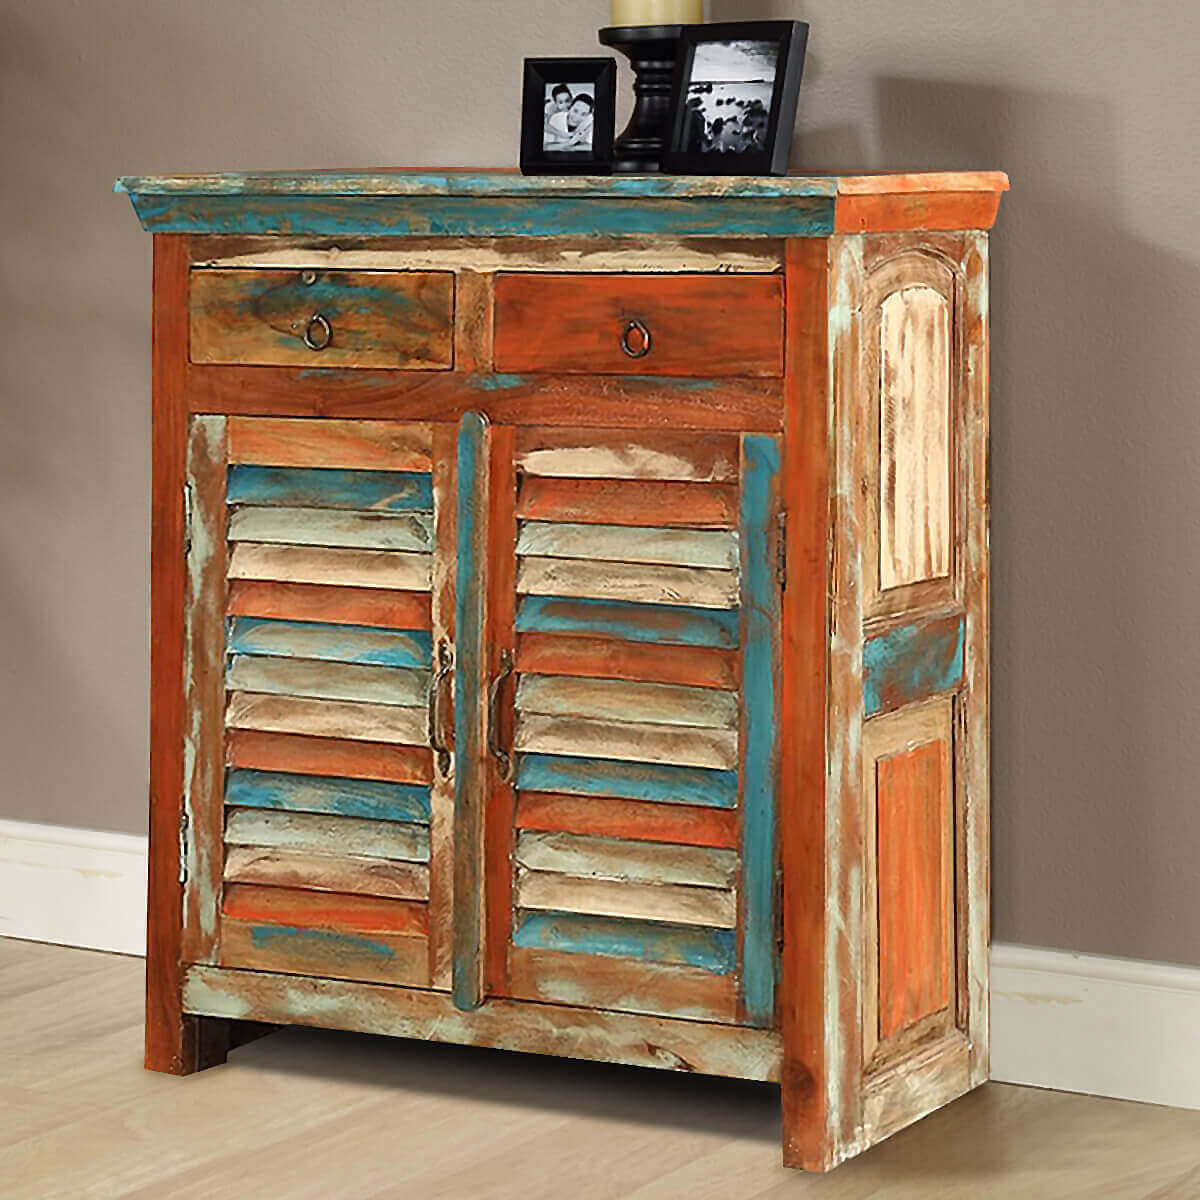 Bartons rustic reclaimed wood freestanding drawer buffet